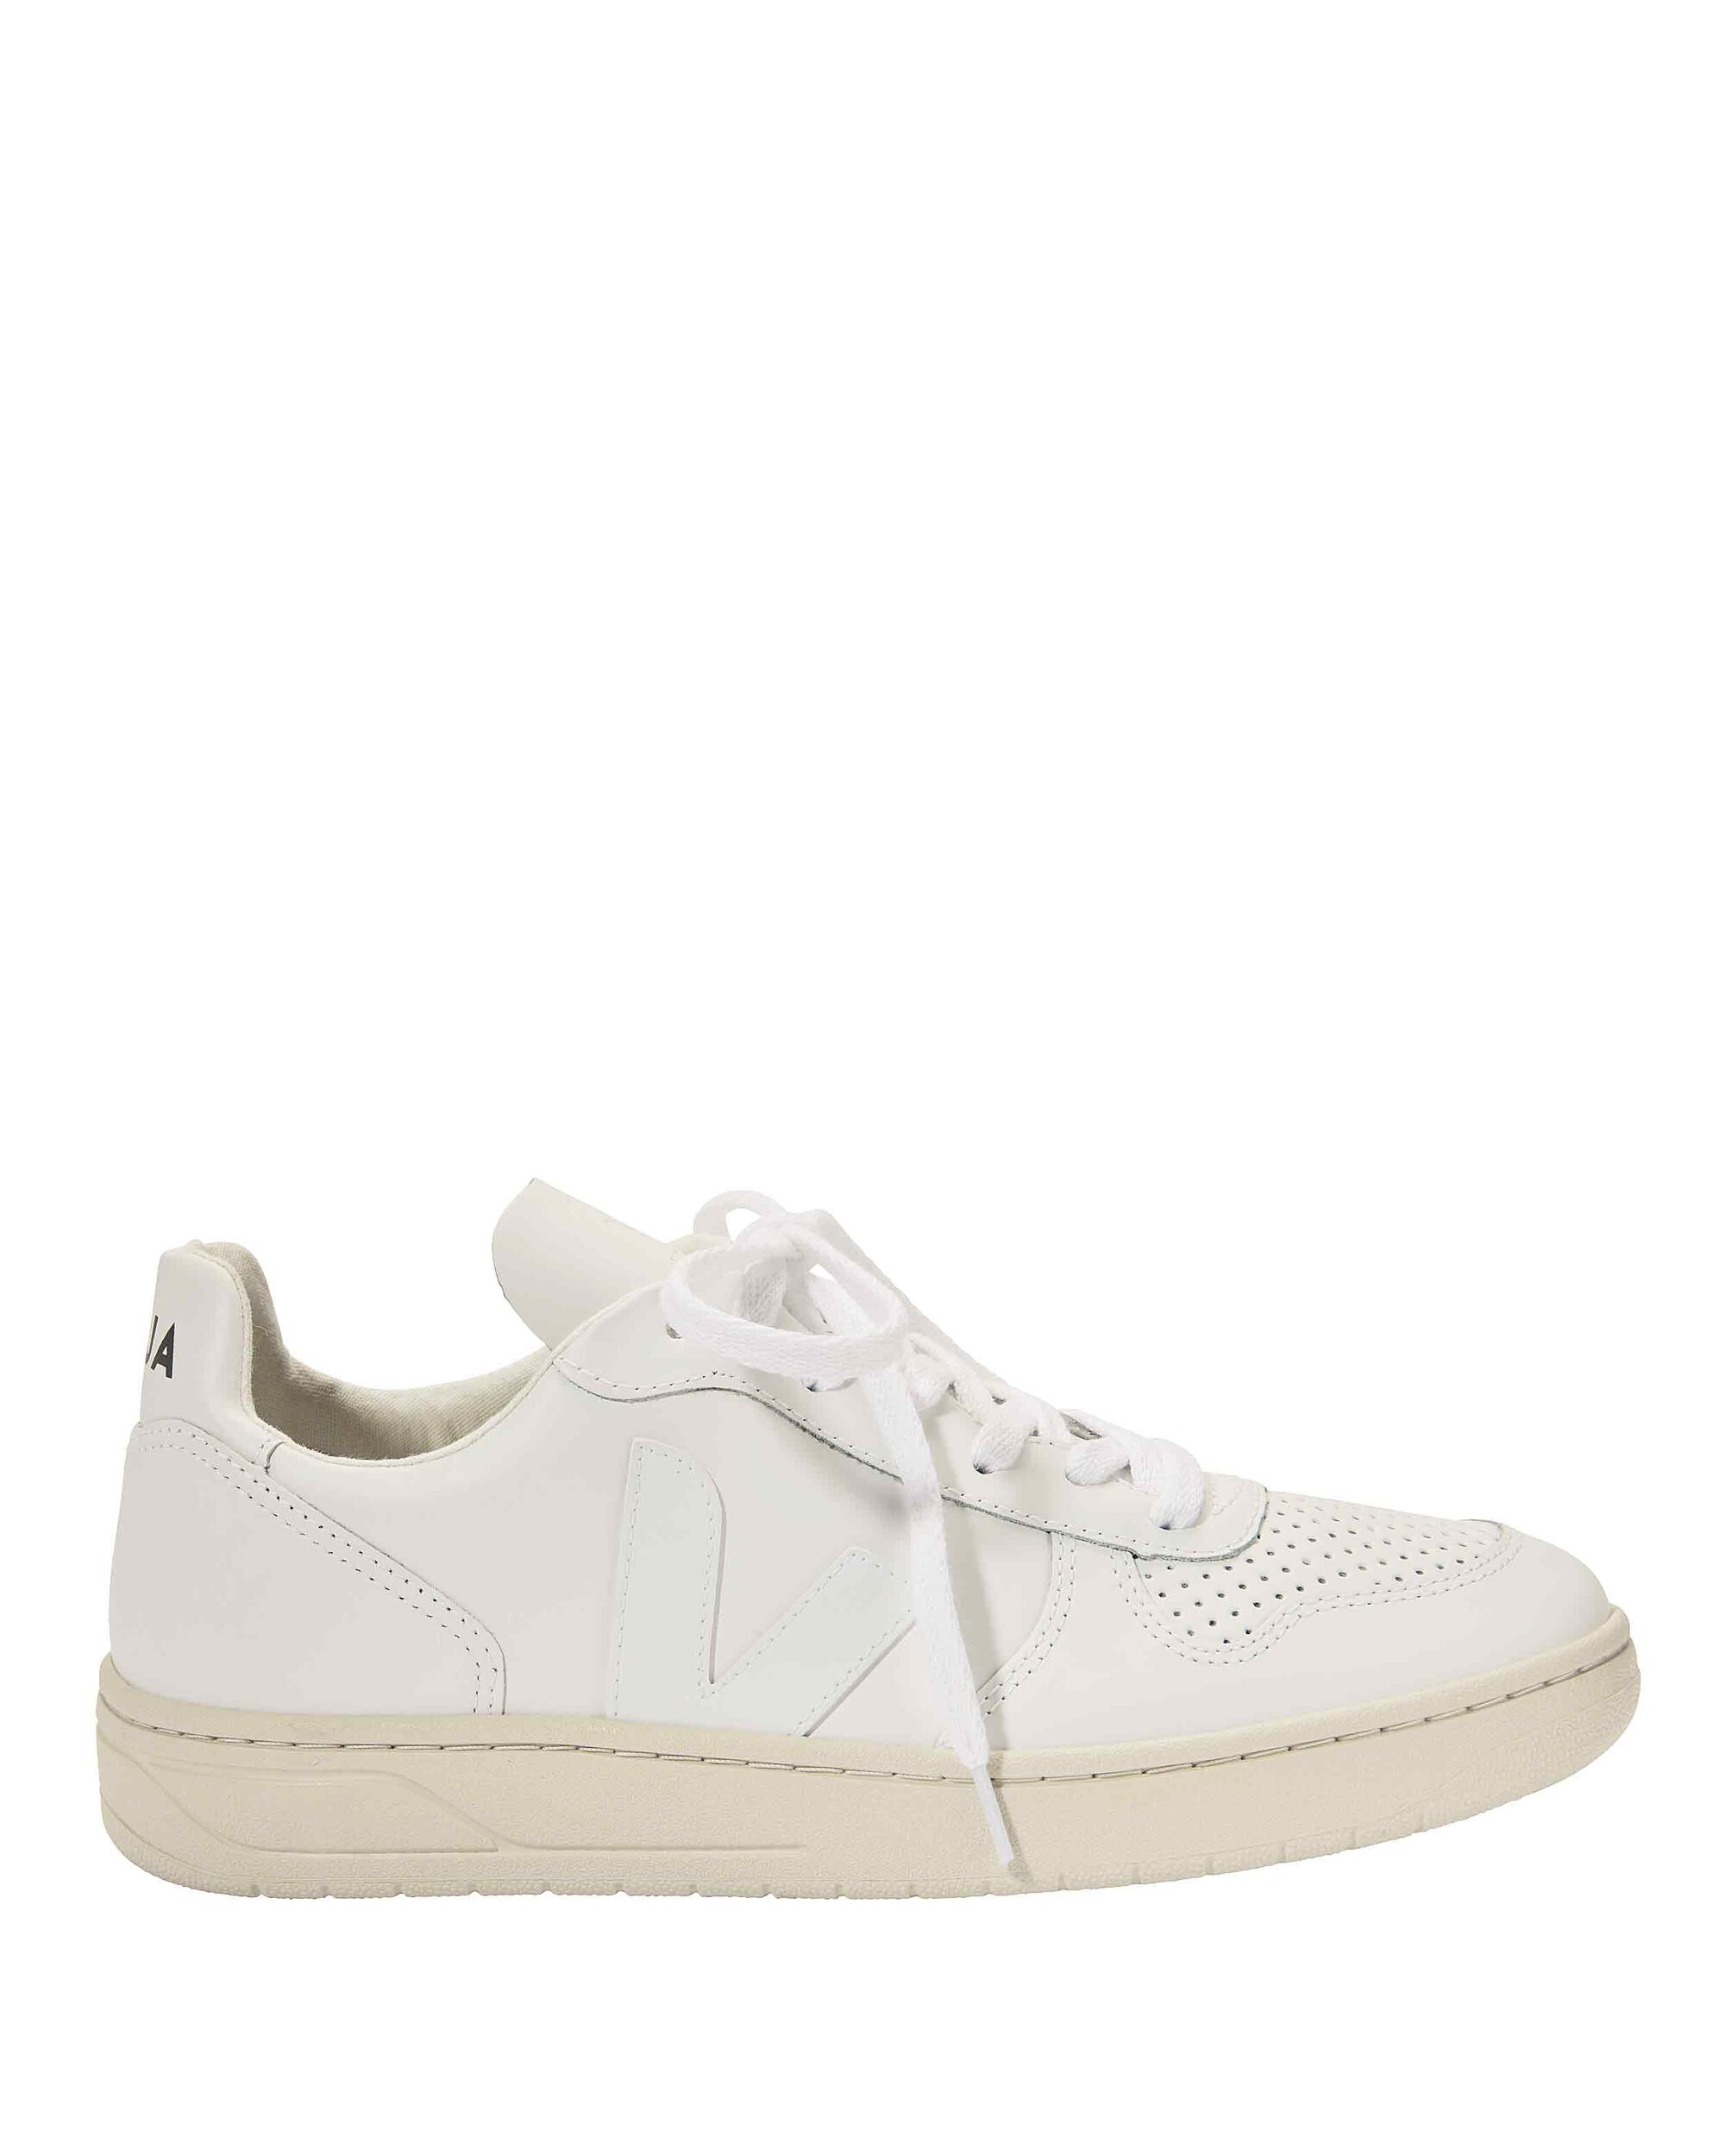 V-10 Perforated Low-Top Sneakers, WHITE, hi-res